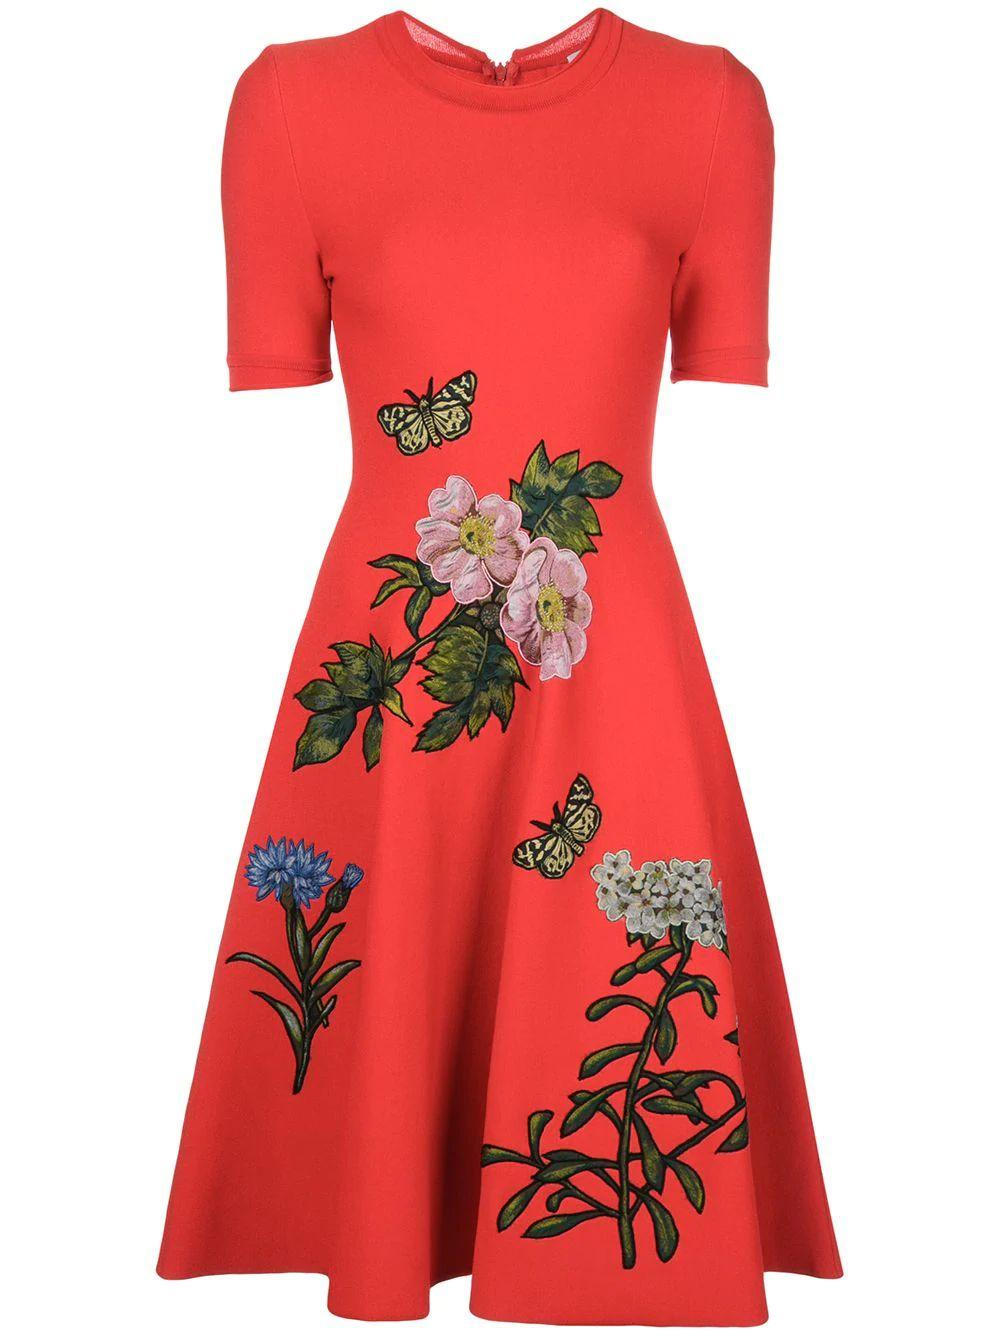 Short Sleeve Knit Floral Fit and Flare Dress